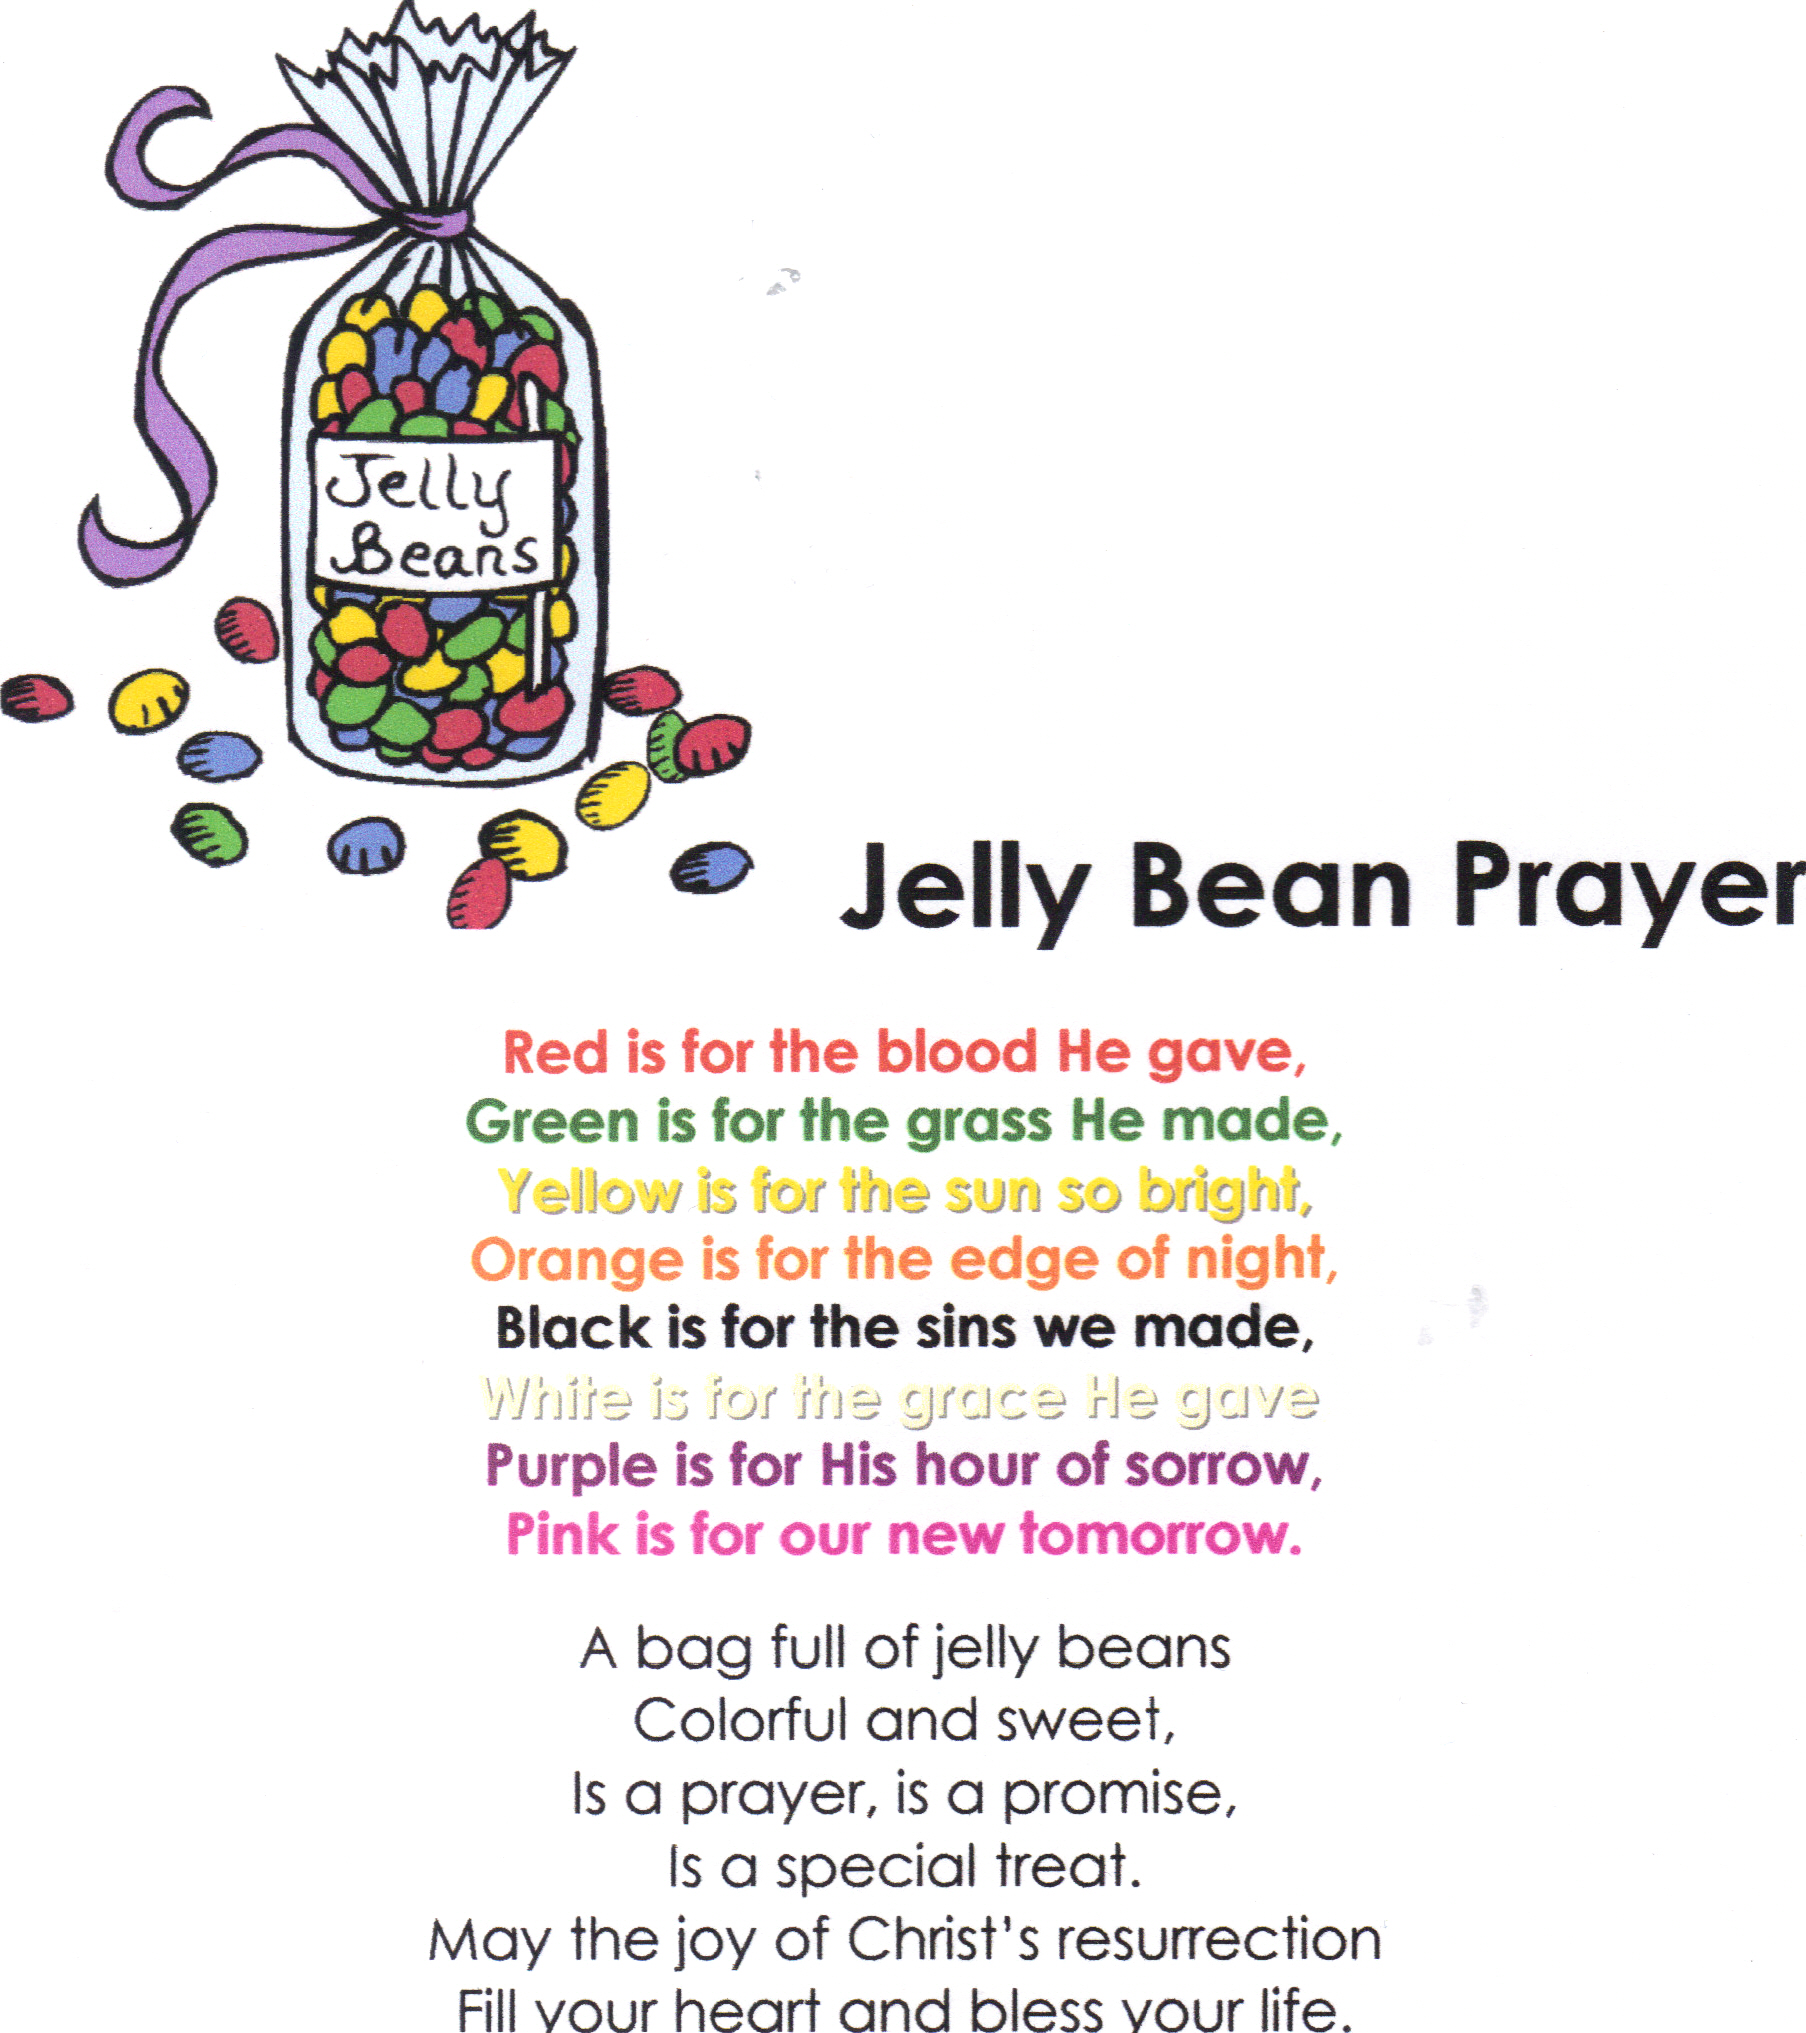 Color Word Worksheet Coloring Pages Blood Answers Printable High School Worksheets with Vowel Consonant Worksheets Coloring Pages Blood Answers  Coloring Pages Blood Answer Key Coloring  Pages Blood Answers Jelly Bean Opposites Worksheets Kindergarten